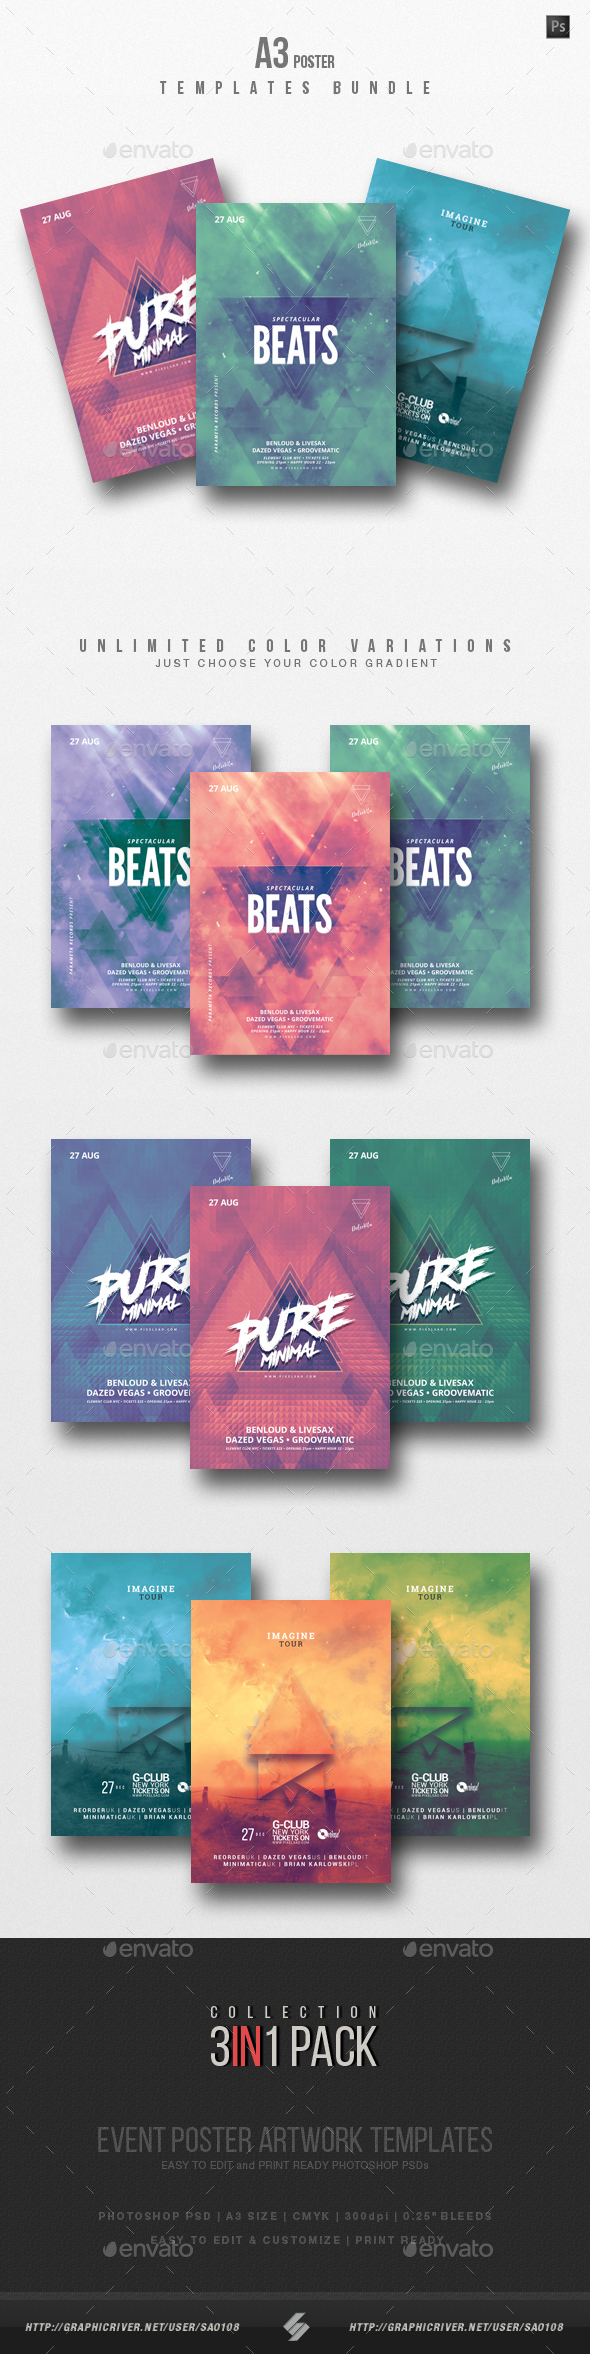 Minimal Sound vol.4 - DJ Party Poster / Flyer Templates Bundle A3 - Clubs & Parties Events